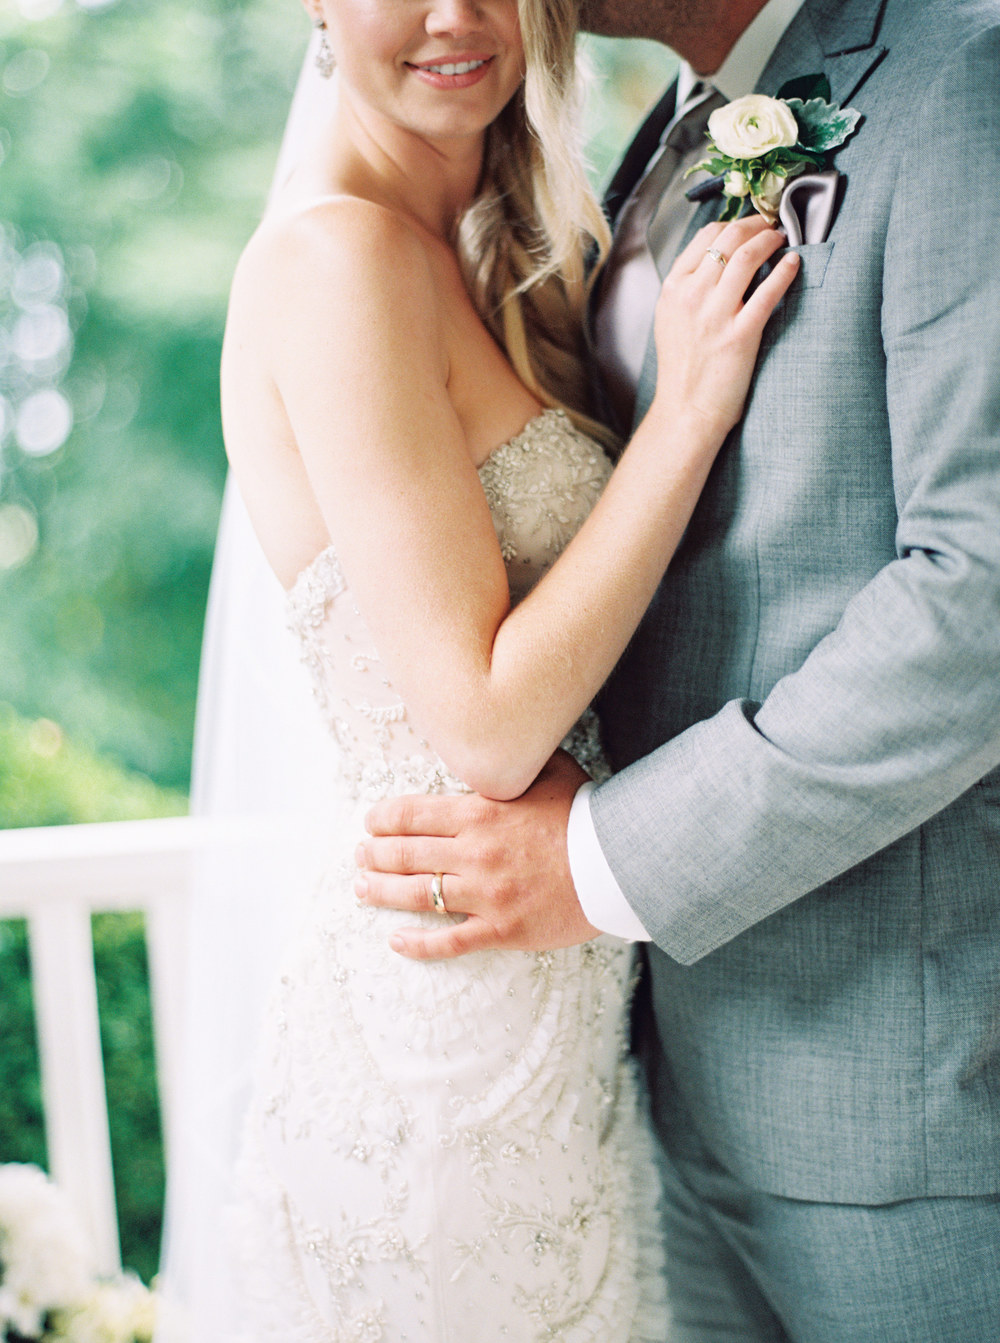 Kurtz-Orchards-Niagara-on-the-Lake-Wedding-photography-by-When-He-Found-Her-065.JPG